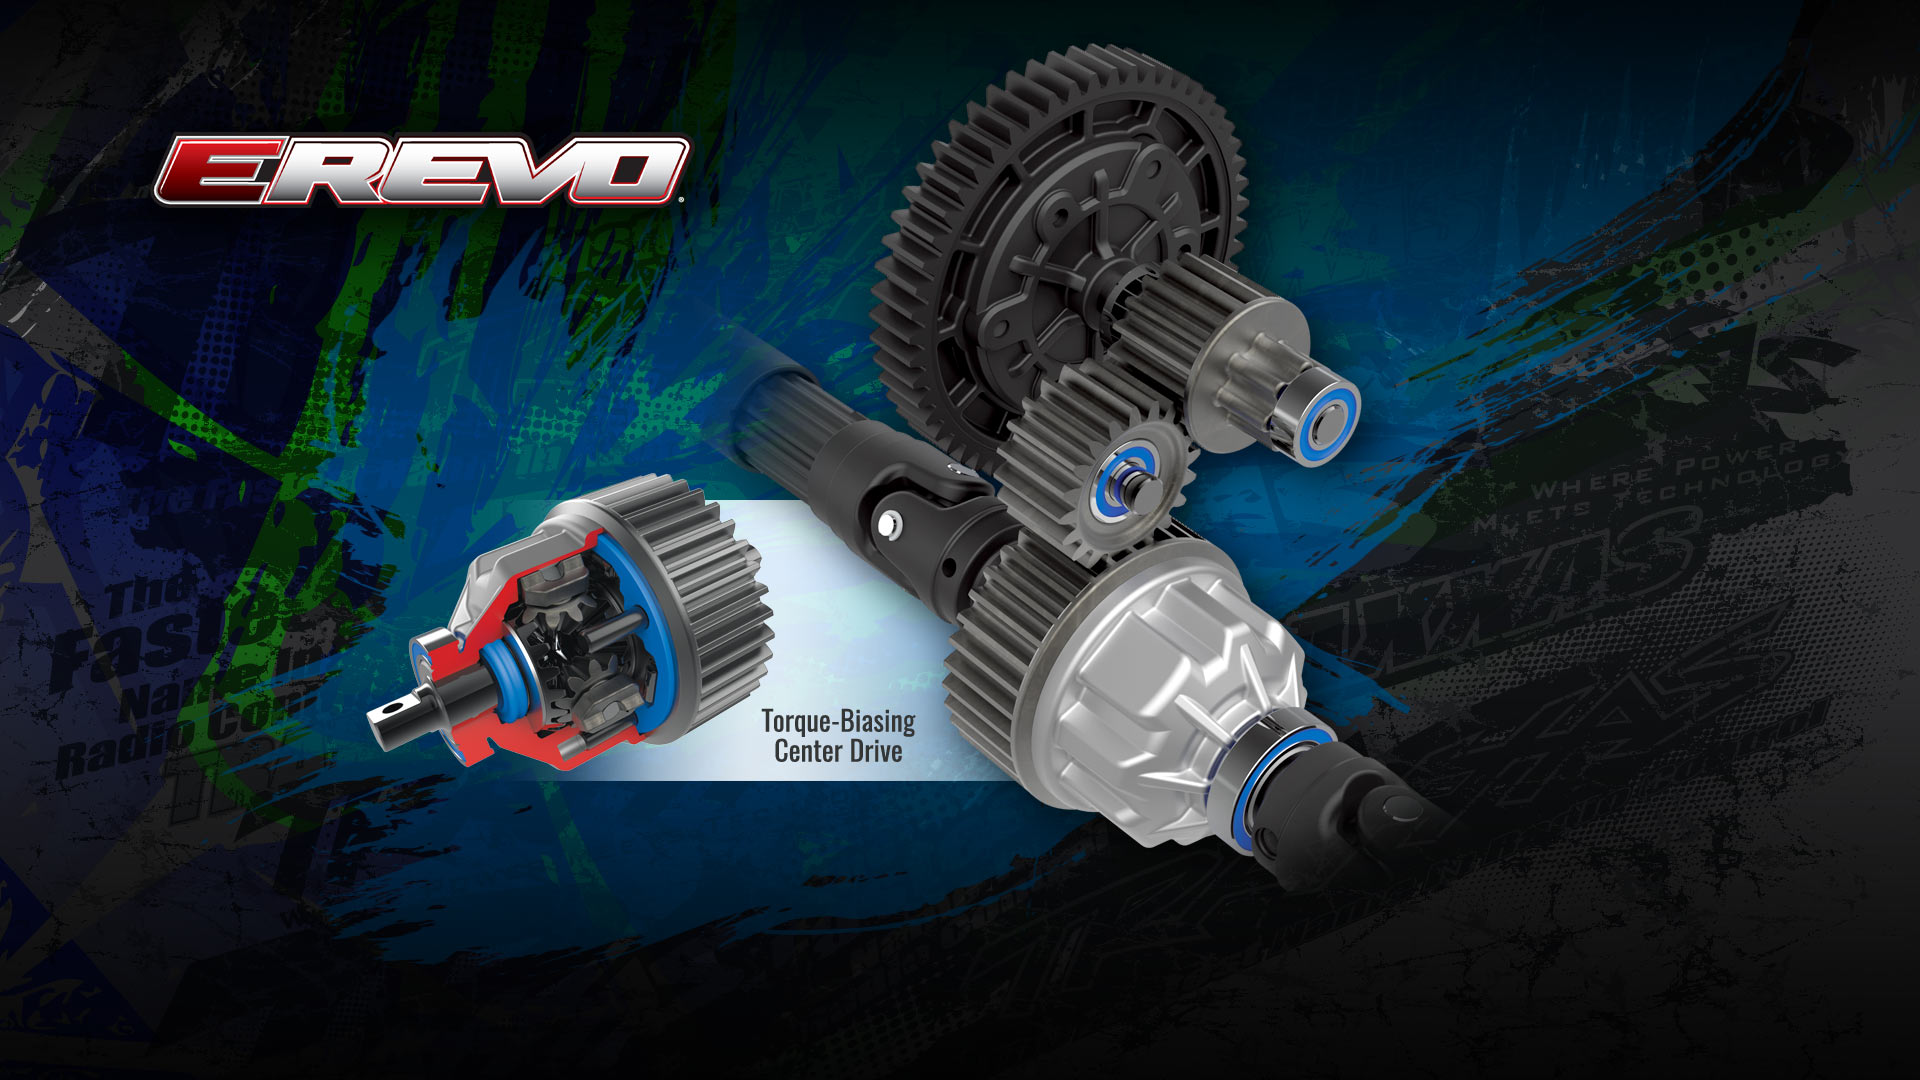 http://rc6.ru/images/upload/E-revo-overview-driveline.jpg